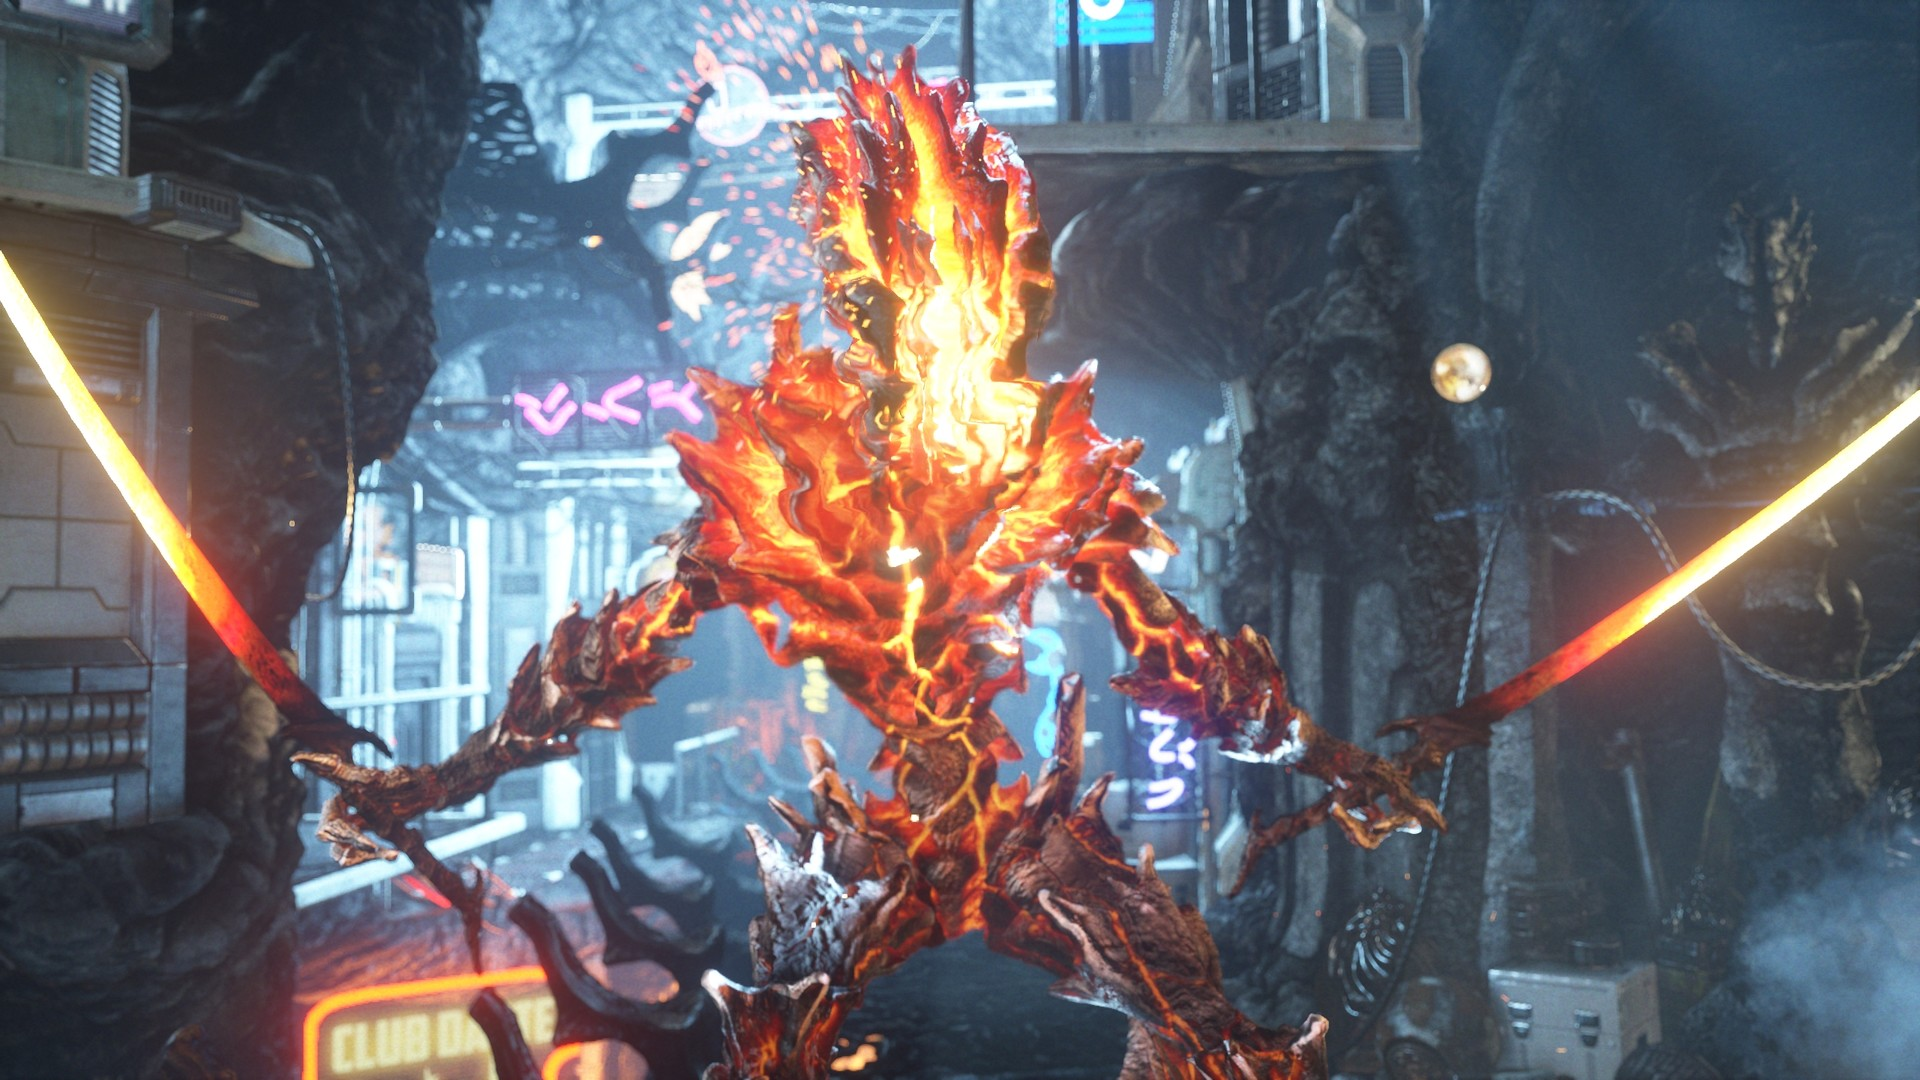 End of support for 3DMark 11 and other benchmarks announced